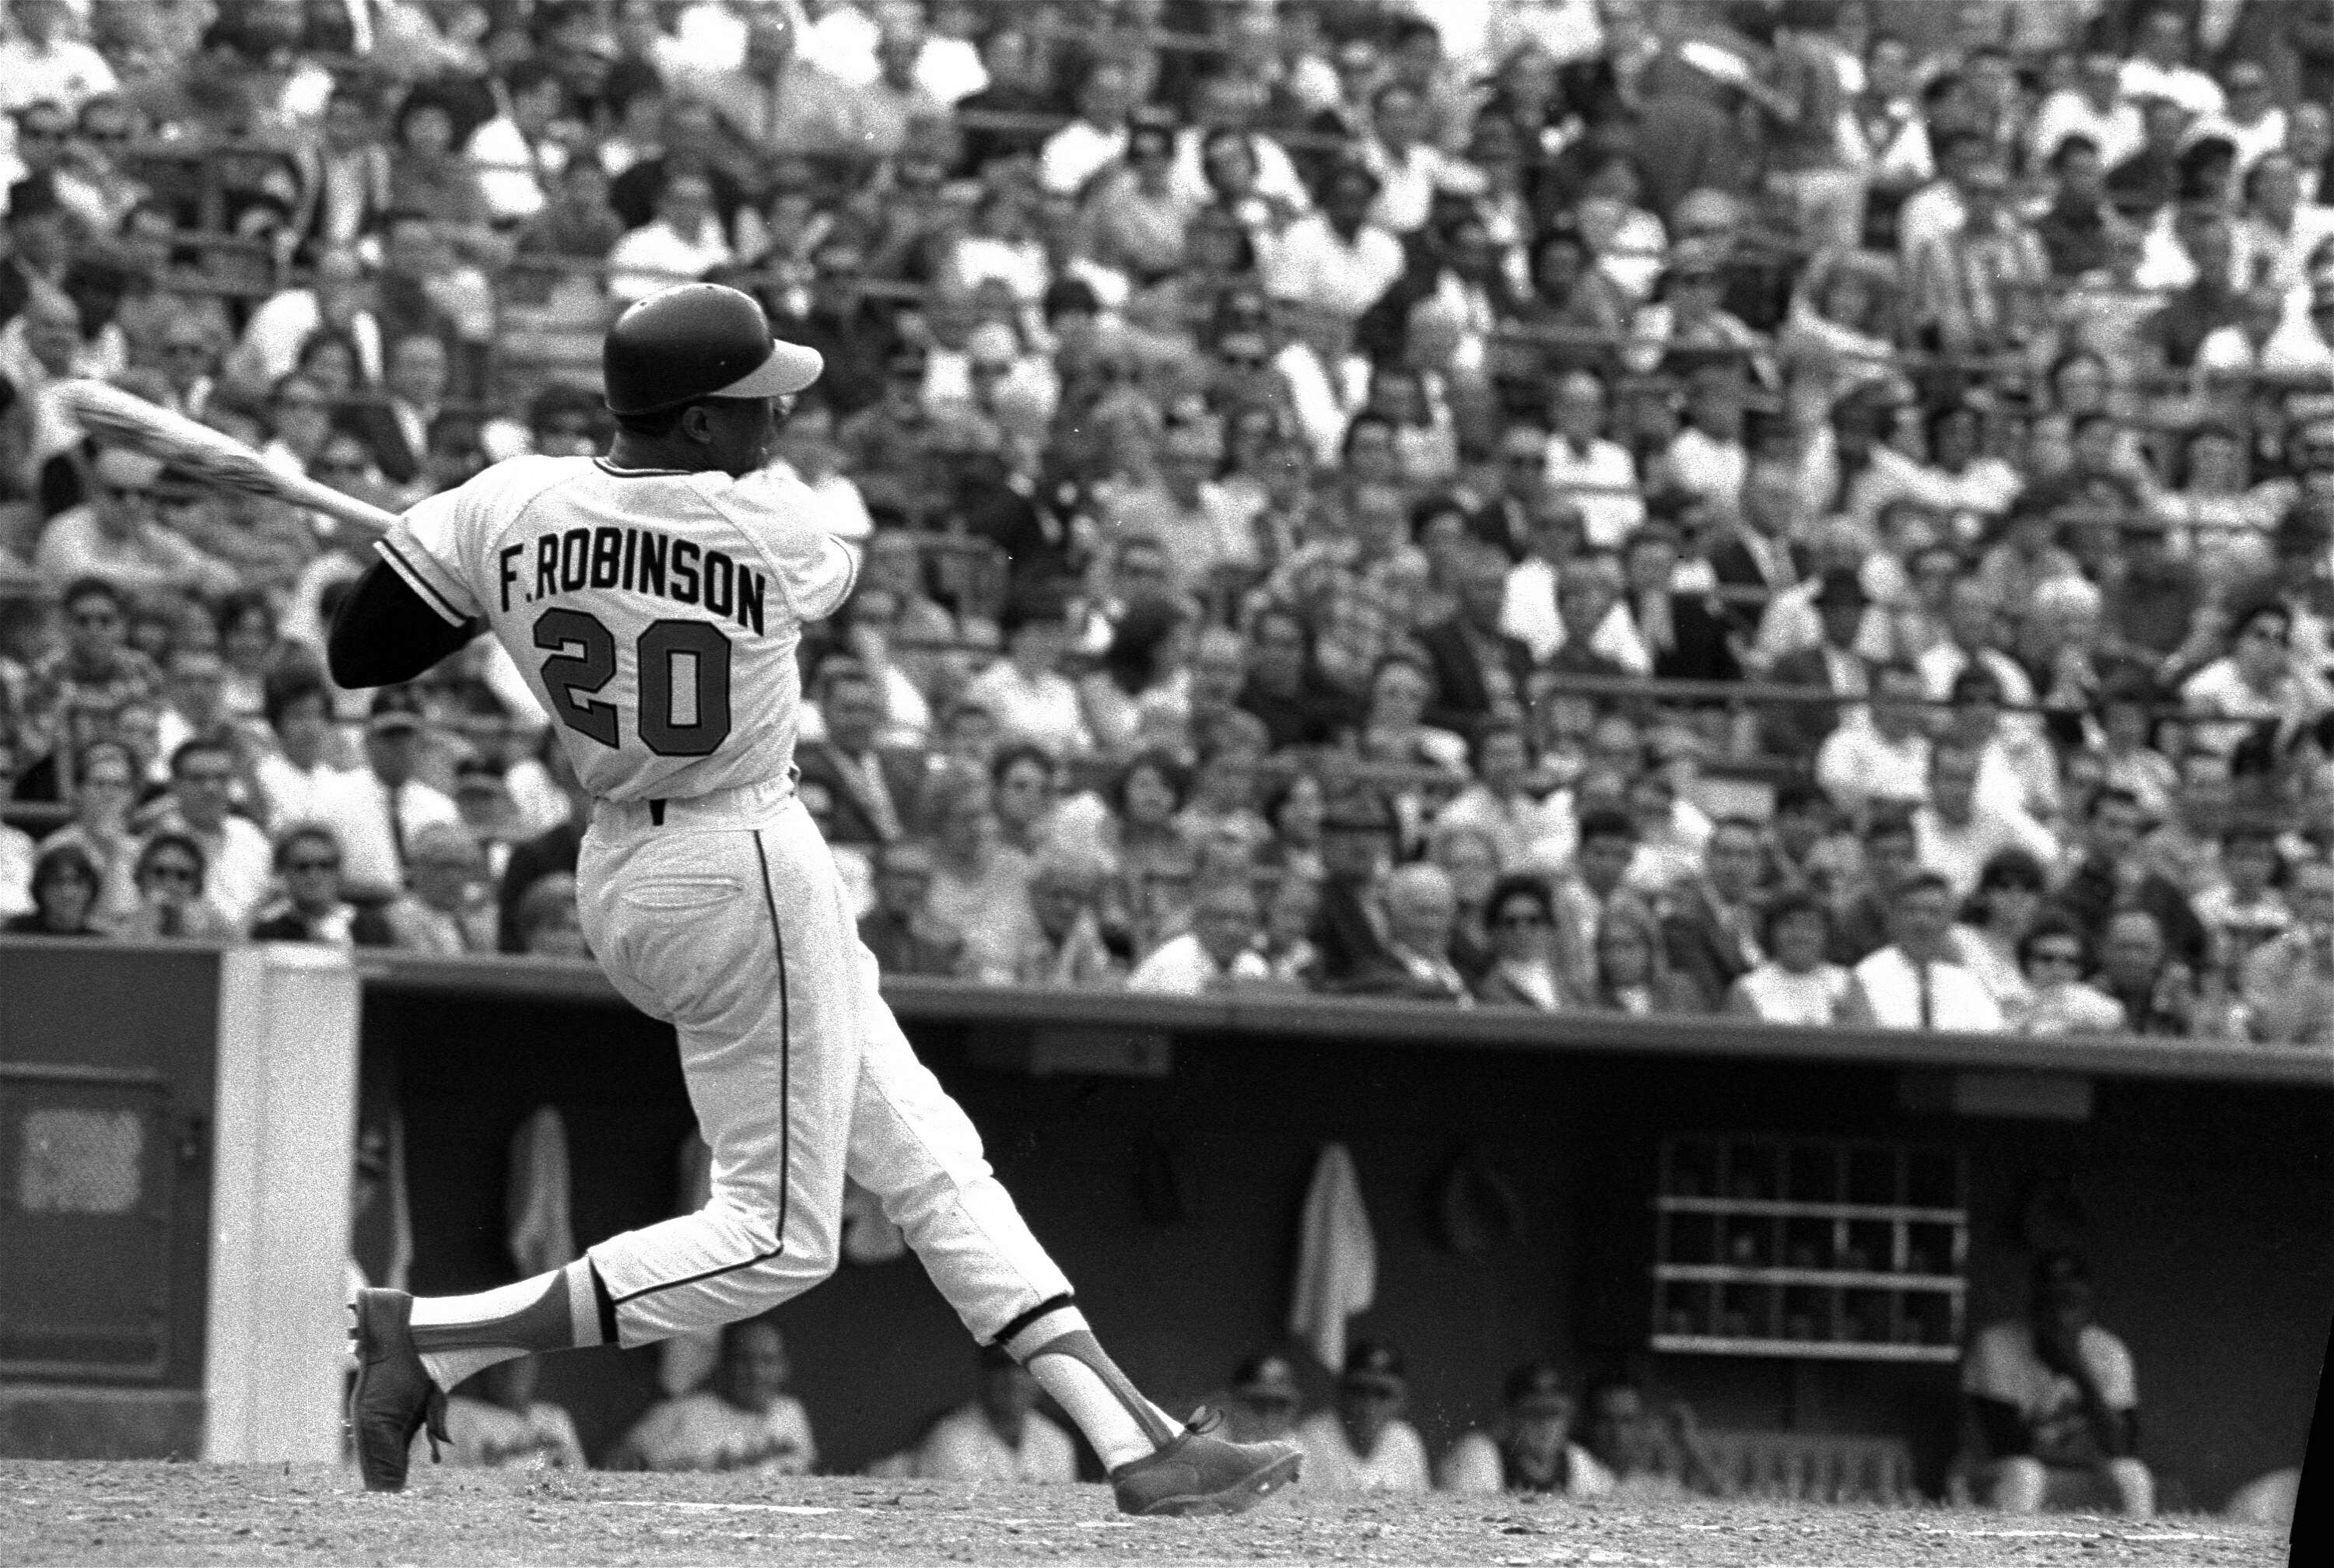 FILE -This is a May 19, 1966, file photo showing Baltimore Orioles' Frank Robinson at bat. Hall of Famer Frank Robinson, the first black manager in Major League Baseball and the only player to win the MVP award in both leagues, has died. He was 83. Robinson had been in hospice care at his home in Bel Air. MLB confirmed his death Thursday, Feb. 7, 2019.(AP Photo/File)